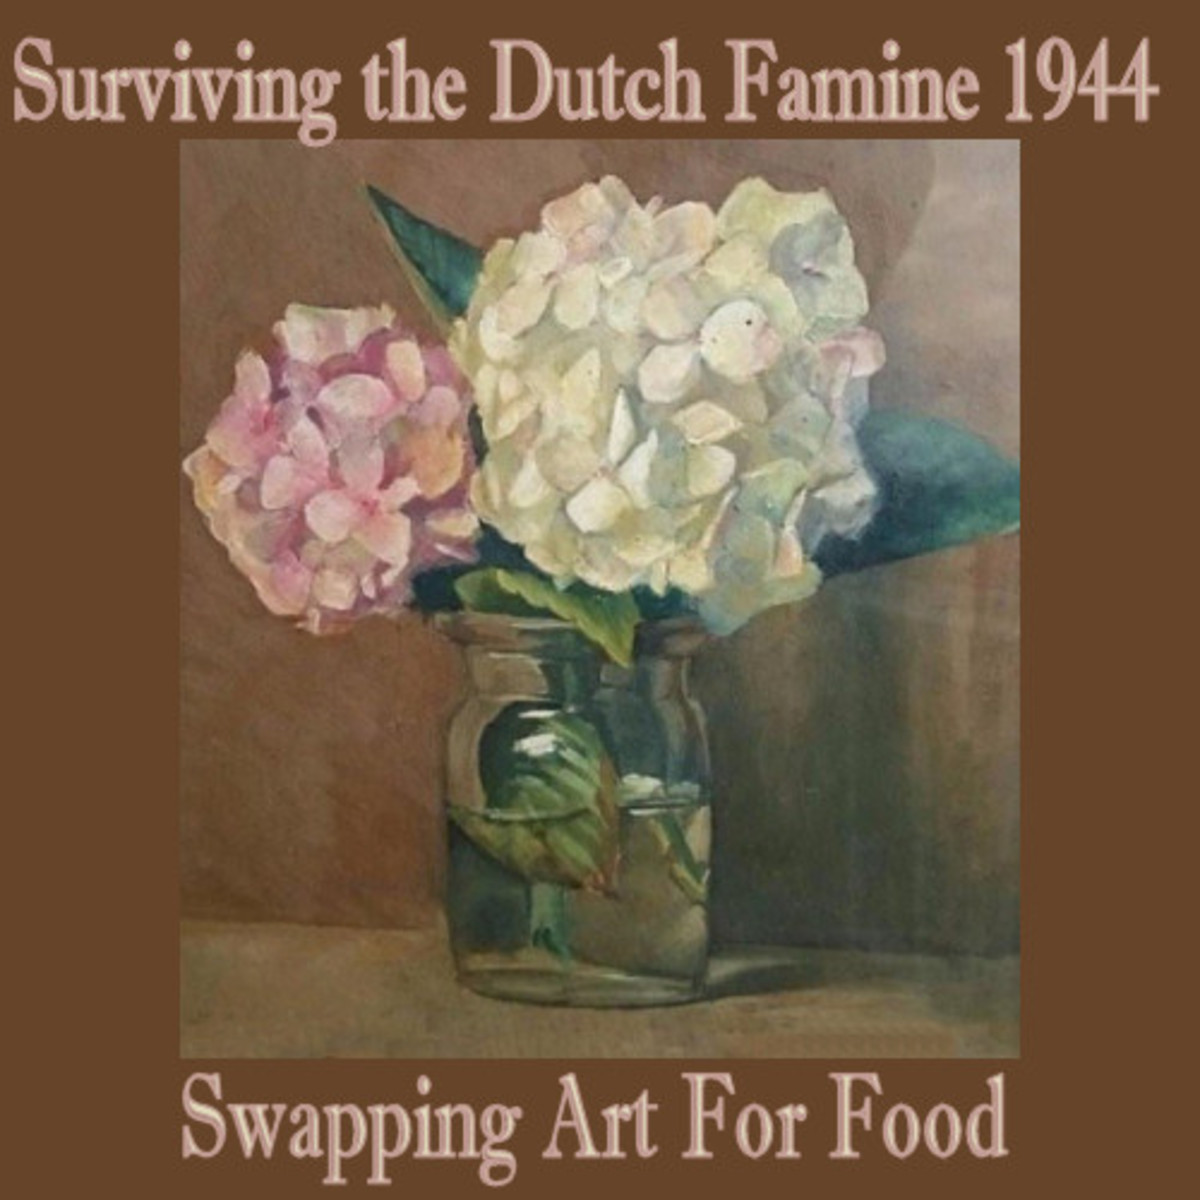 Surviving the 1944 Dutch Famine